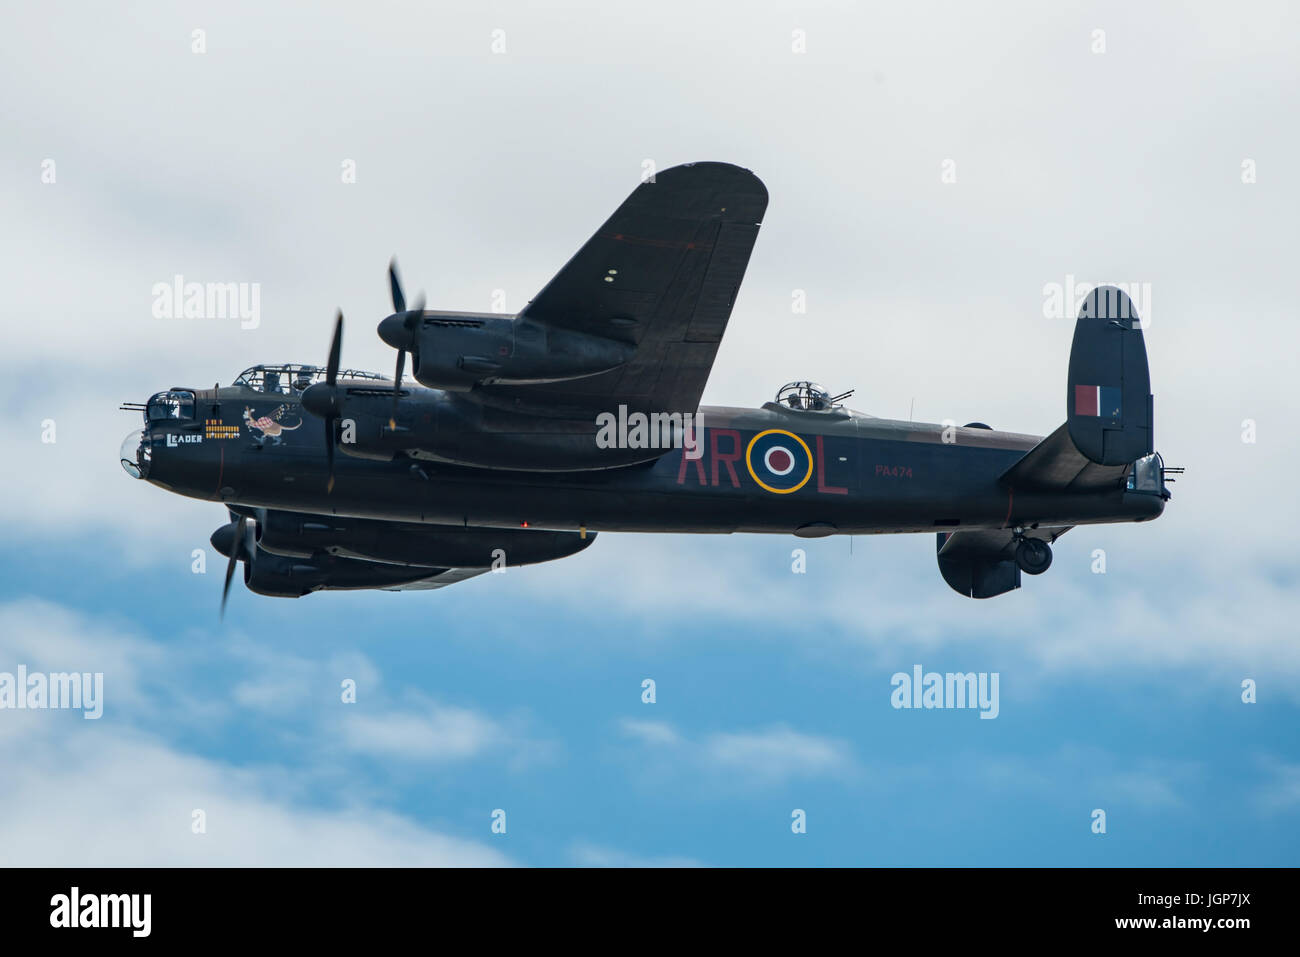 RAF BBMF Lancaster Bomber displaying new markings and nose art at Yeovilton Air Day, UK on the 8th July 2017. Stock Photo